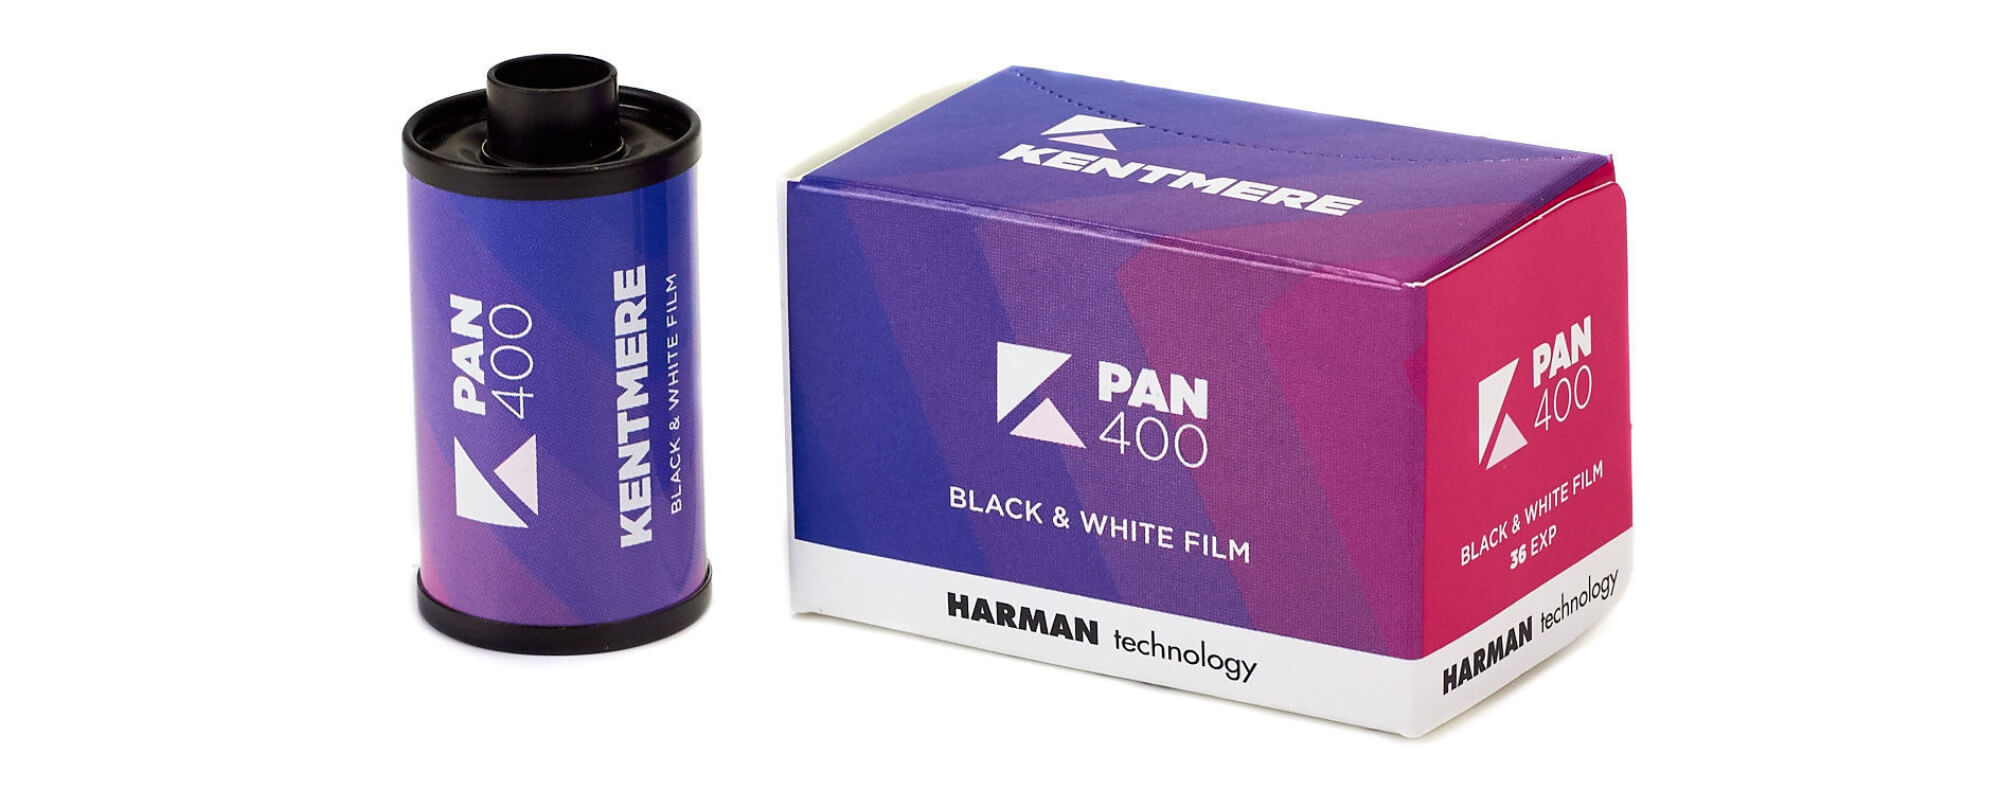 kentmere pan 400 review